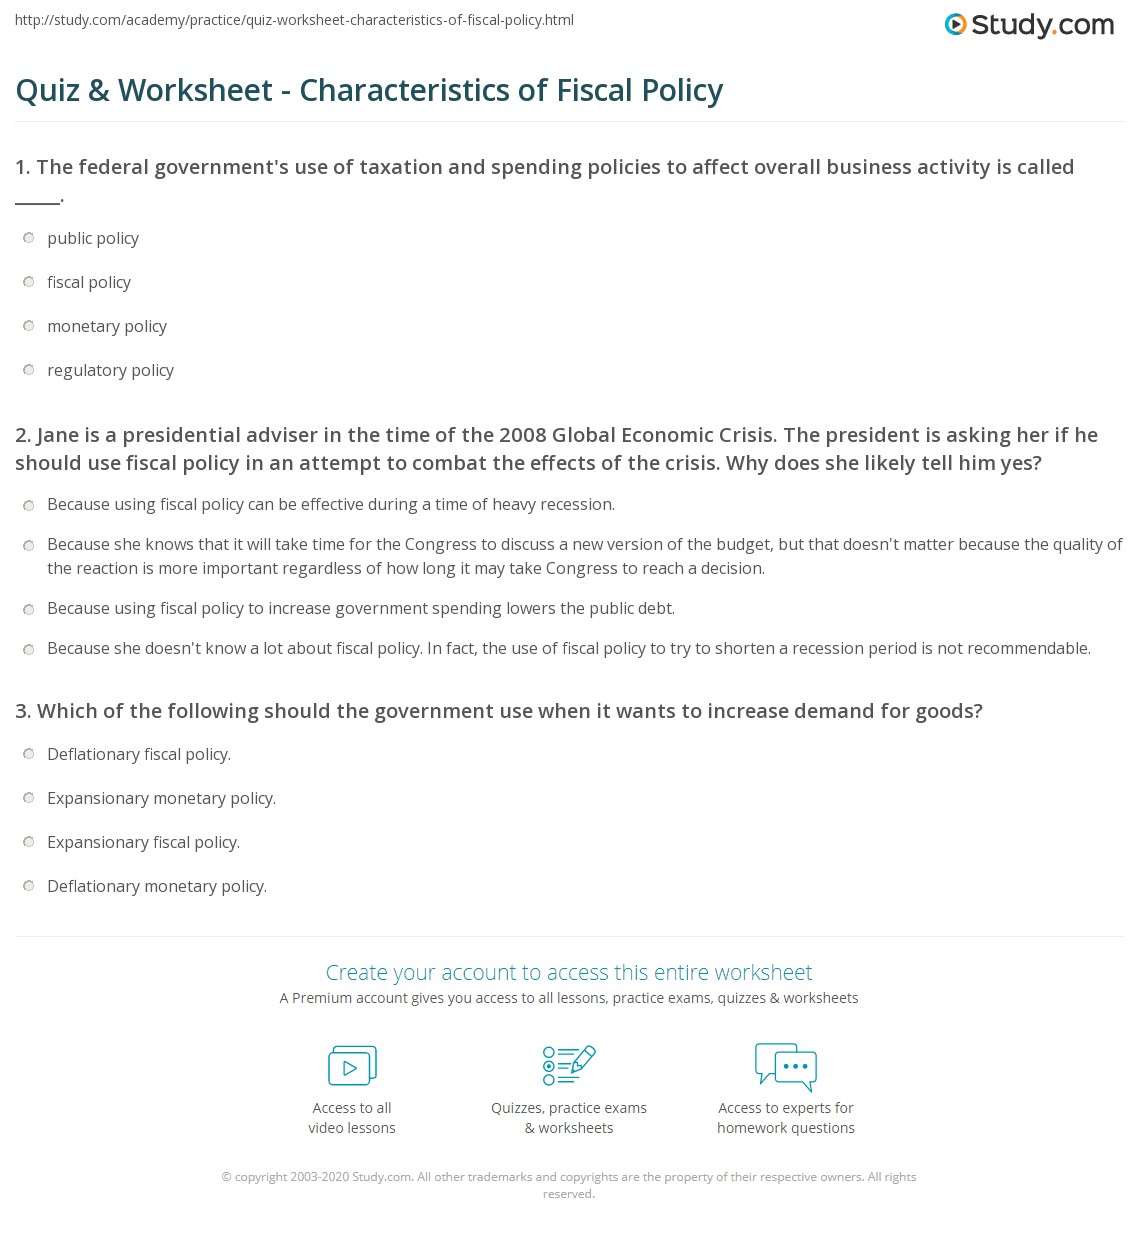 Quiz & Worksheet Characteristics of Fiscal Policy